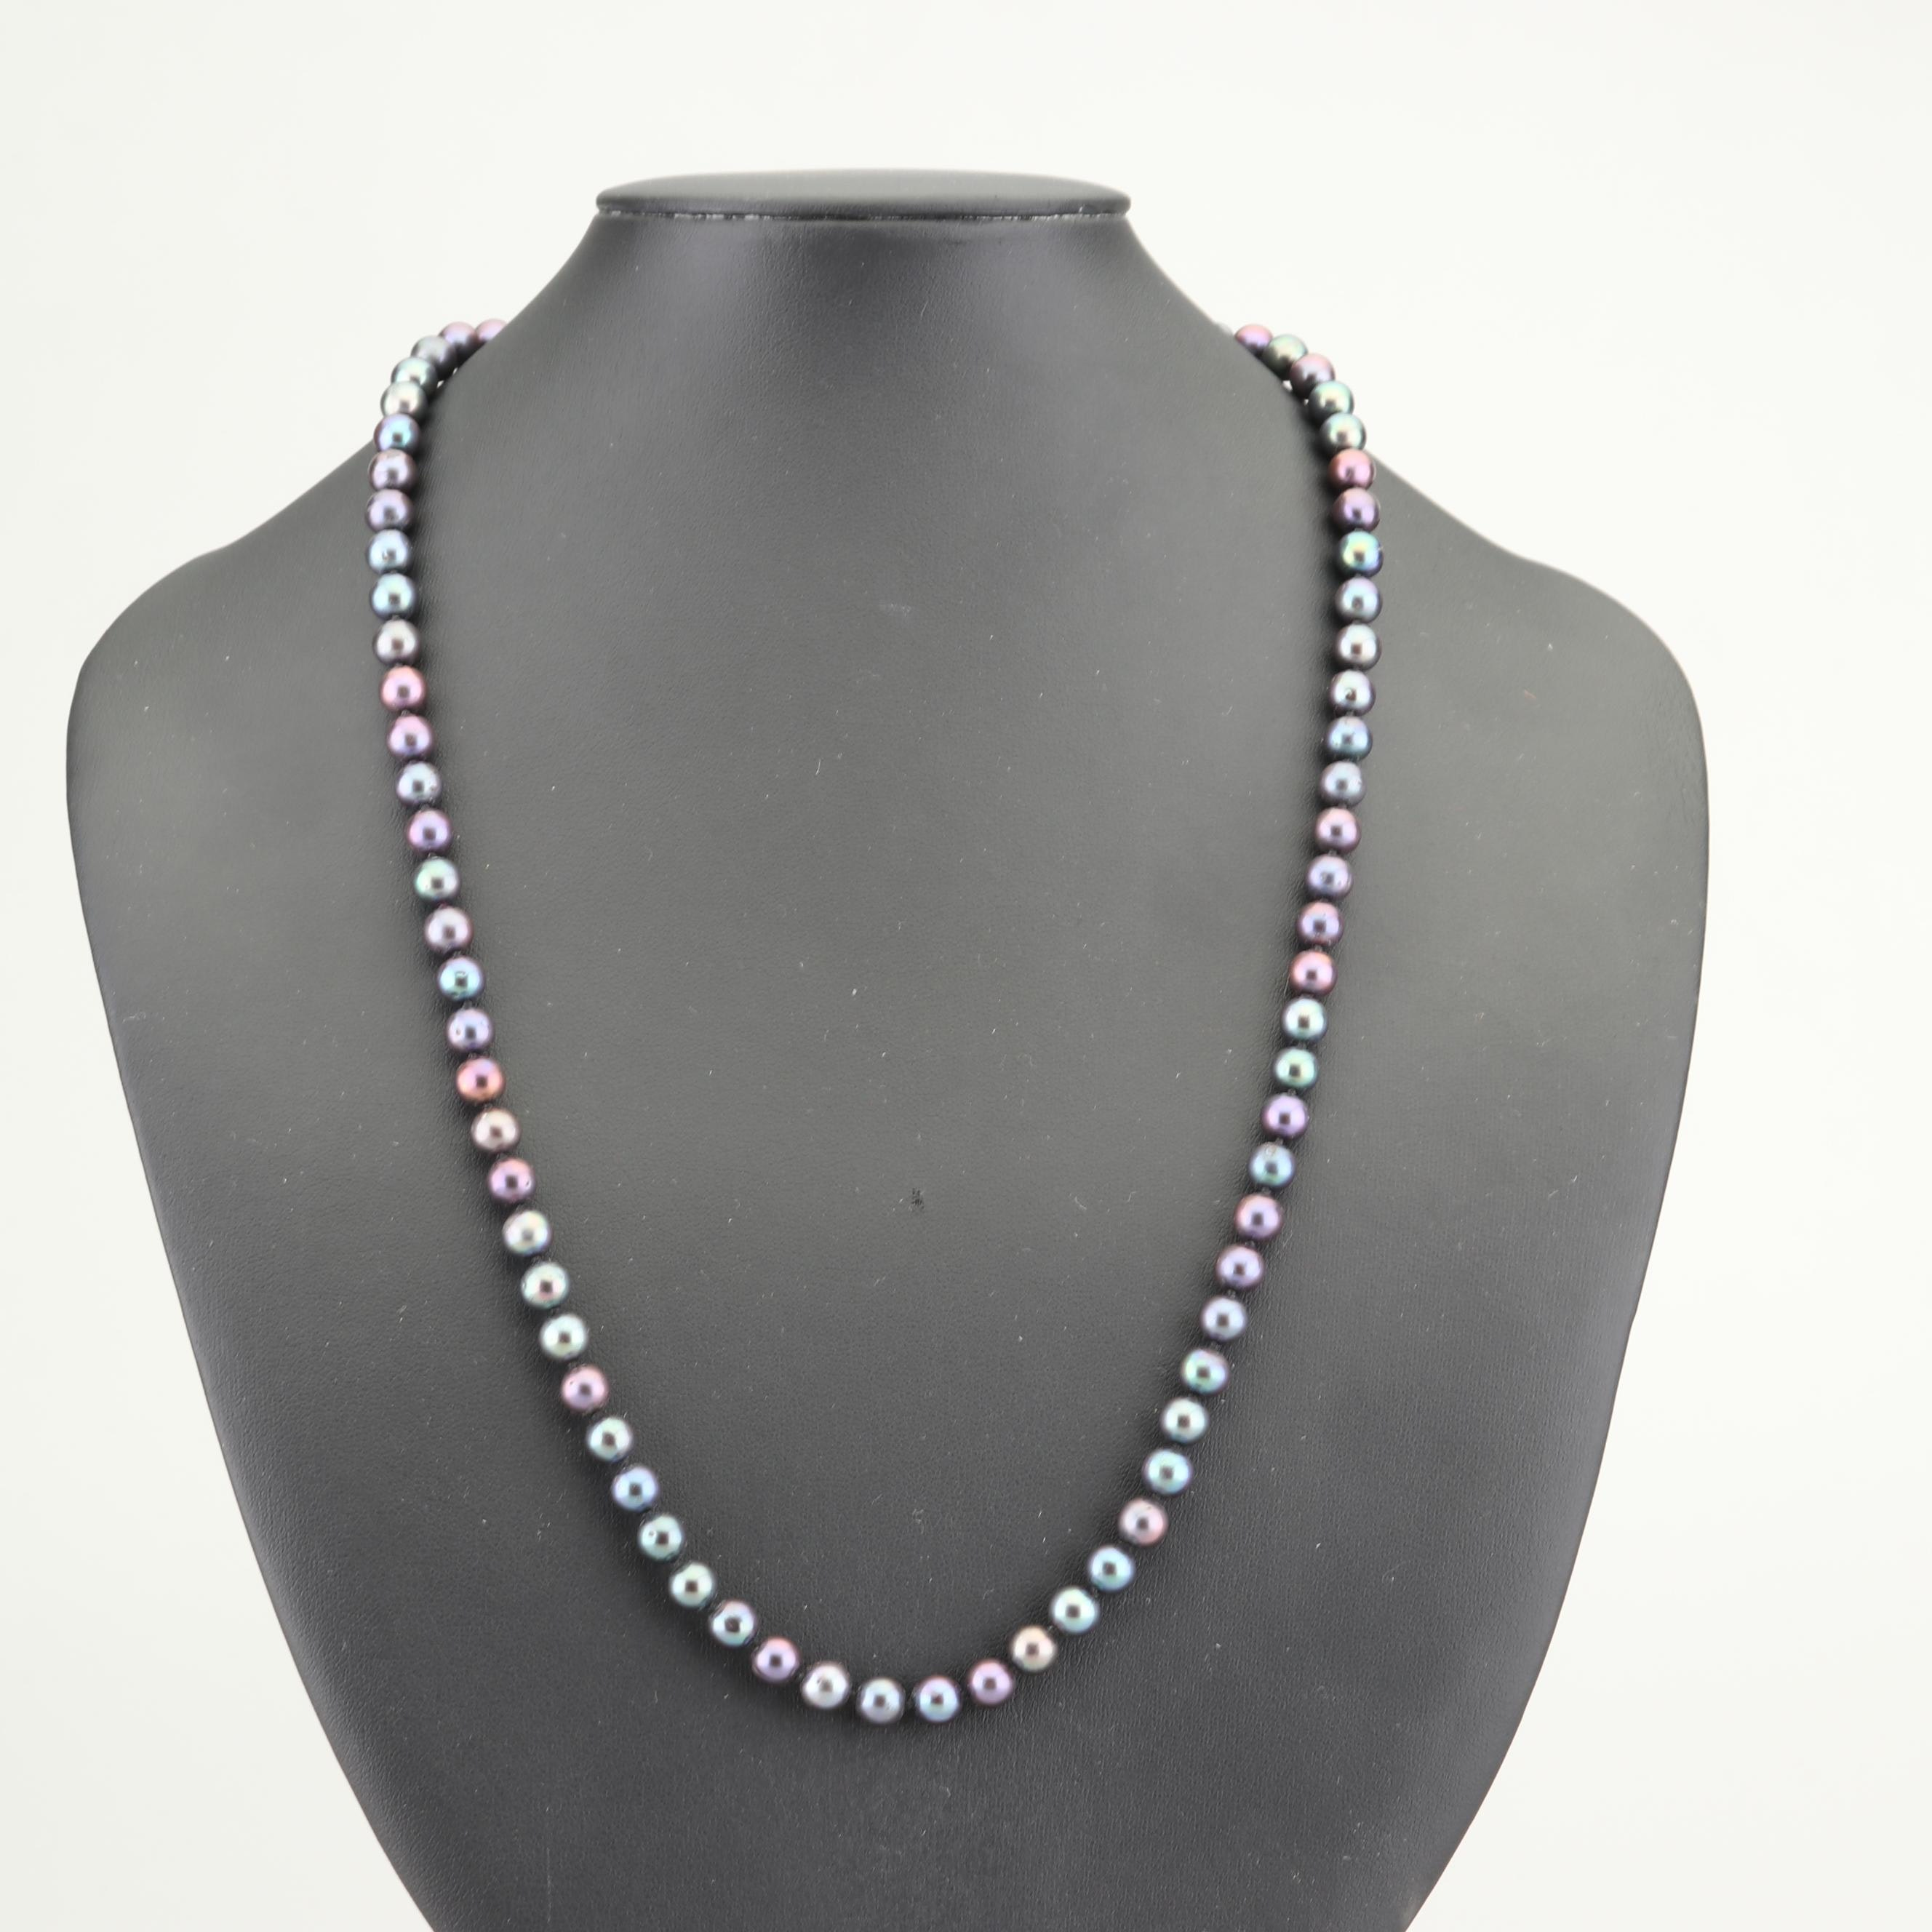 Freshwater Cultured Black Pearl Necklace with 14K Yellow Gold Clasp